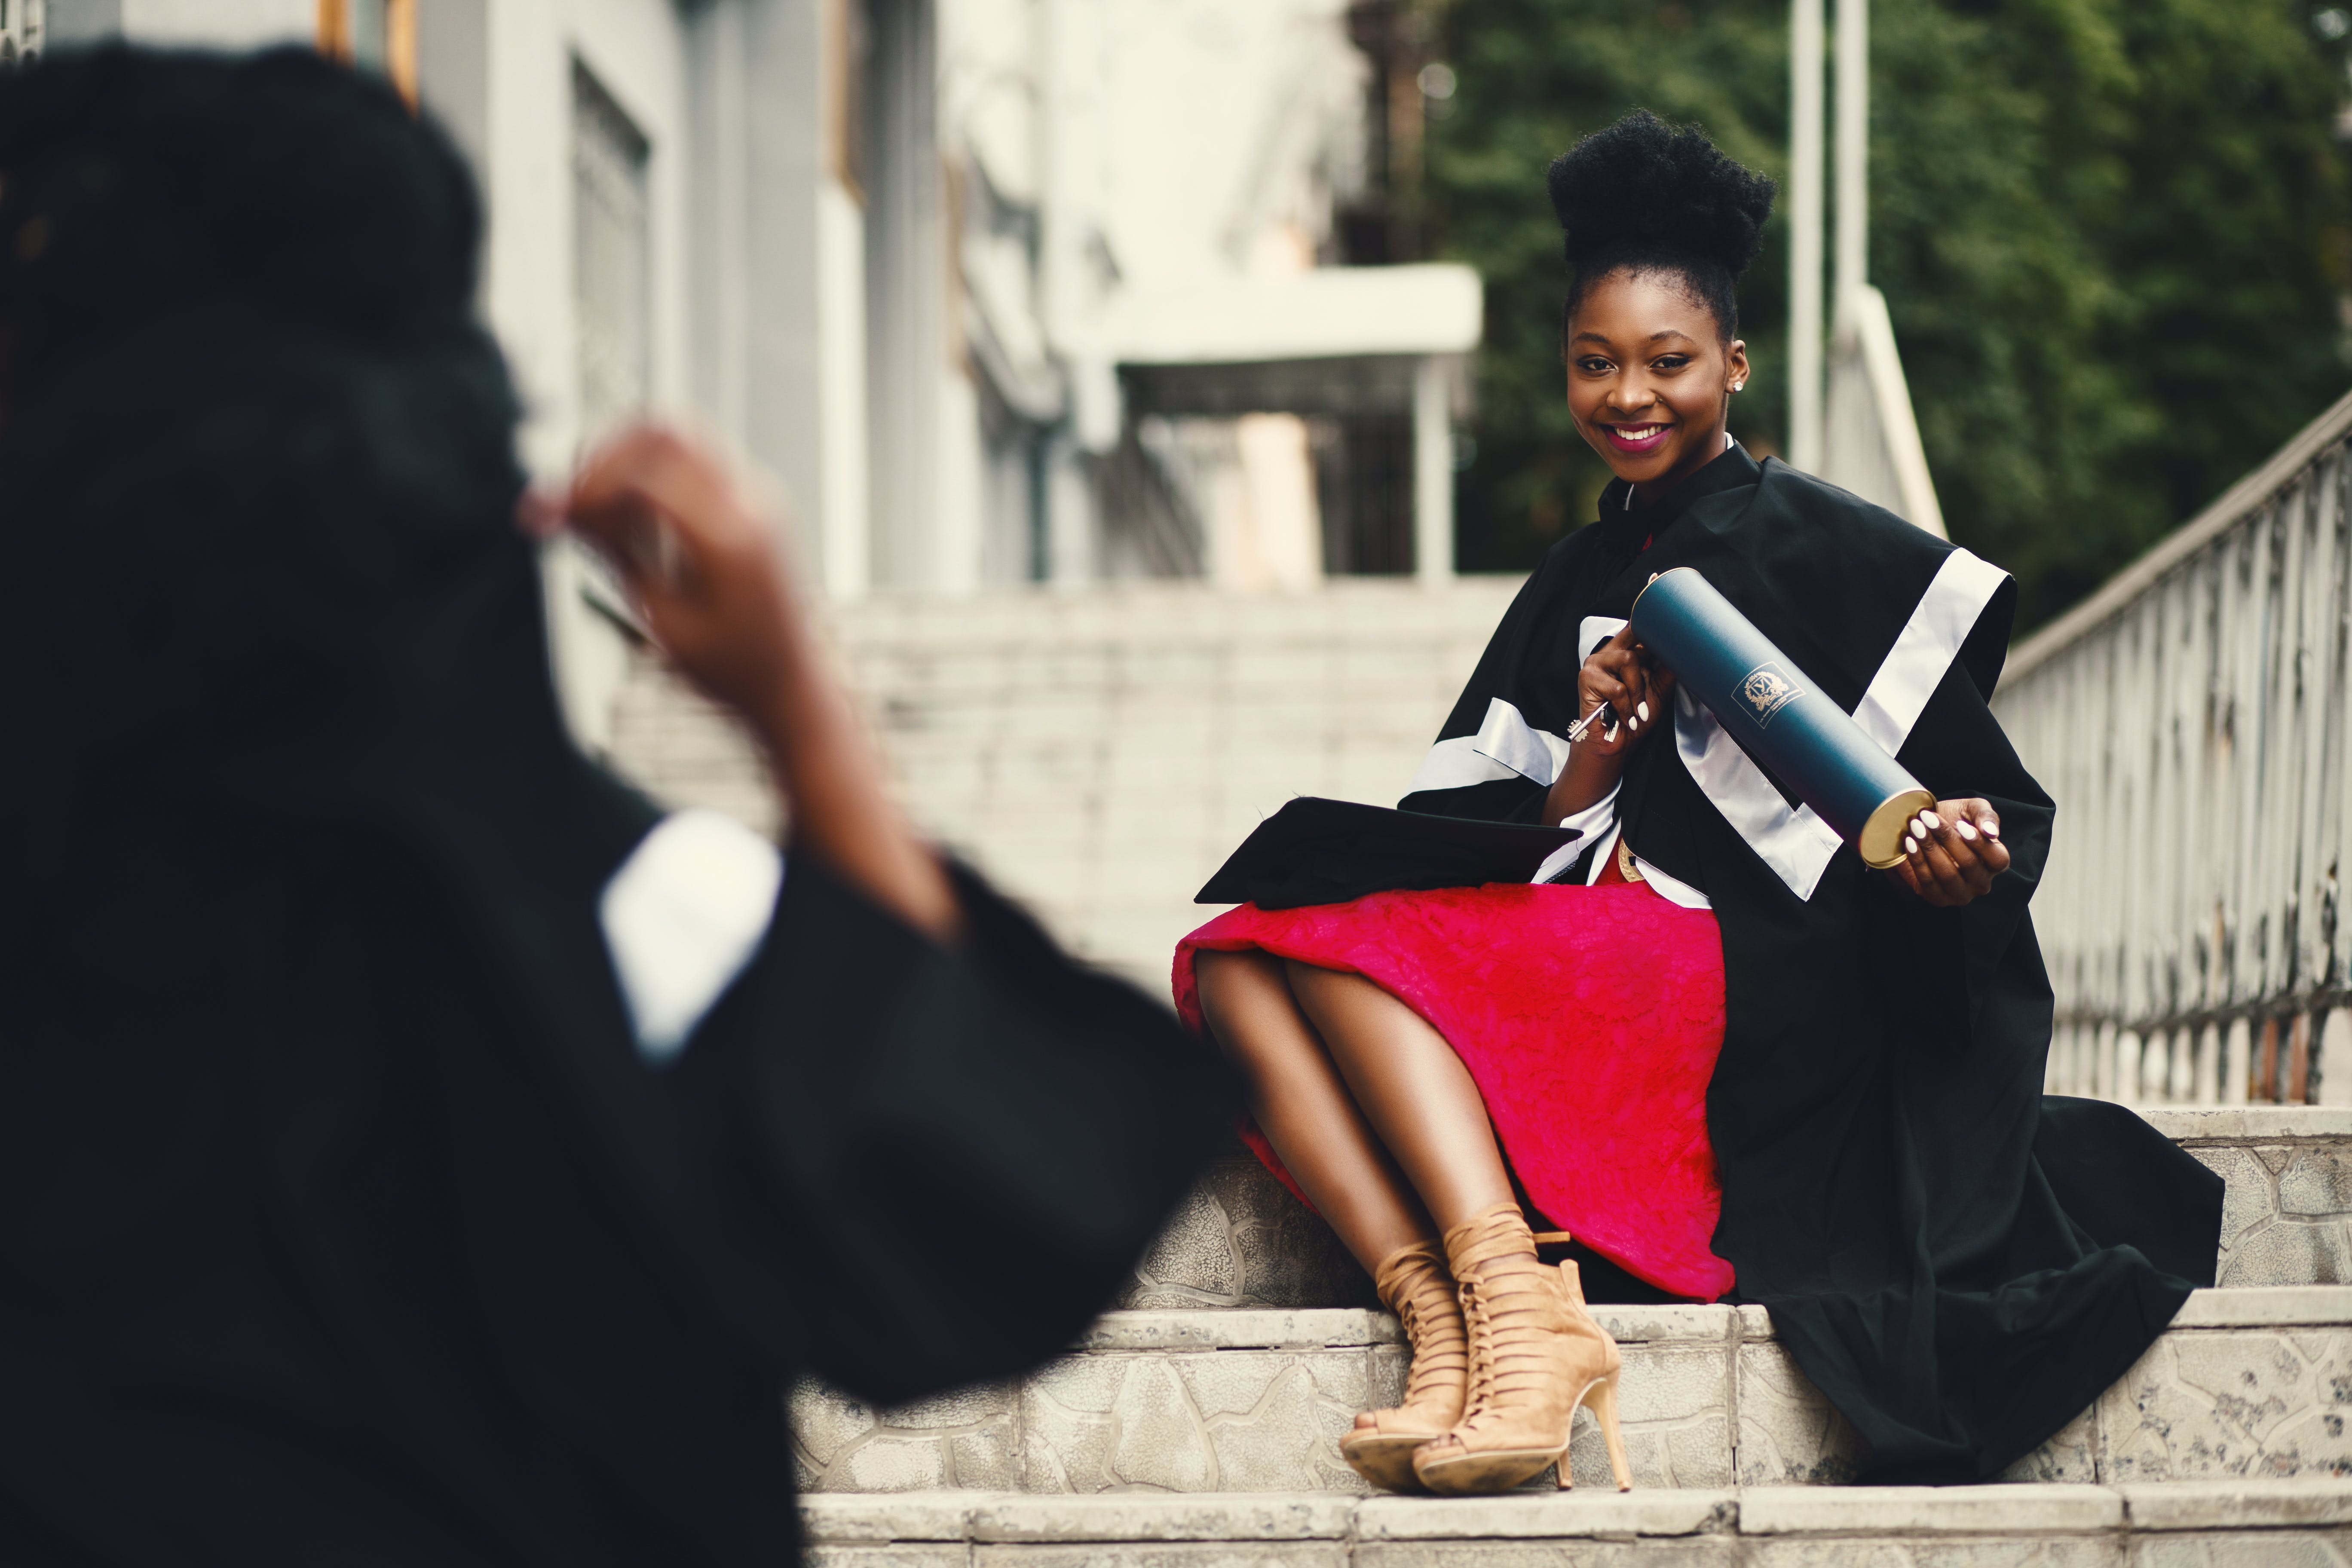 Woman Wearing Black Graduation Coat Sits on Stairs